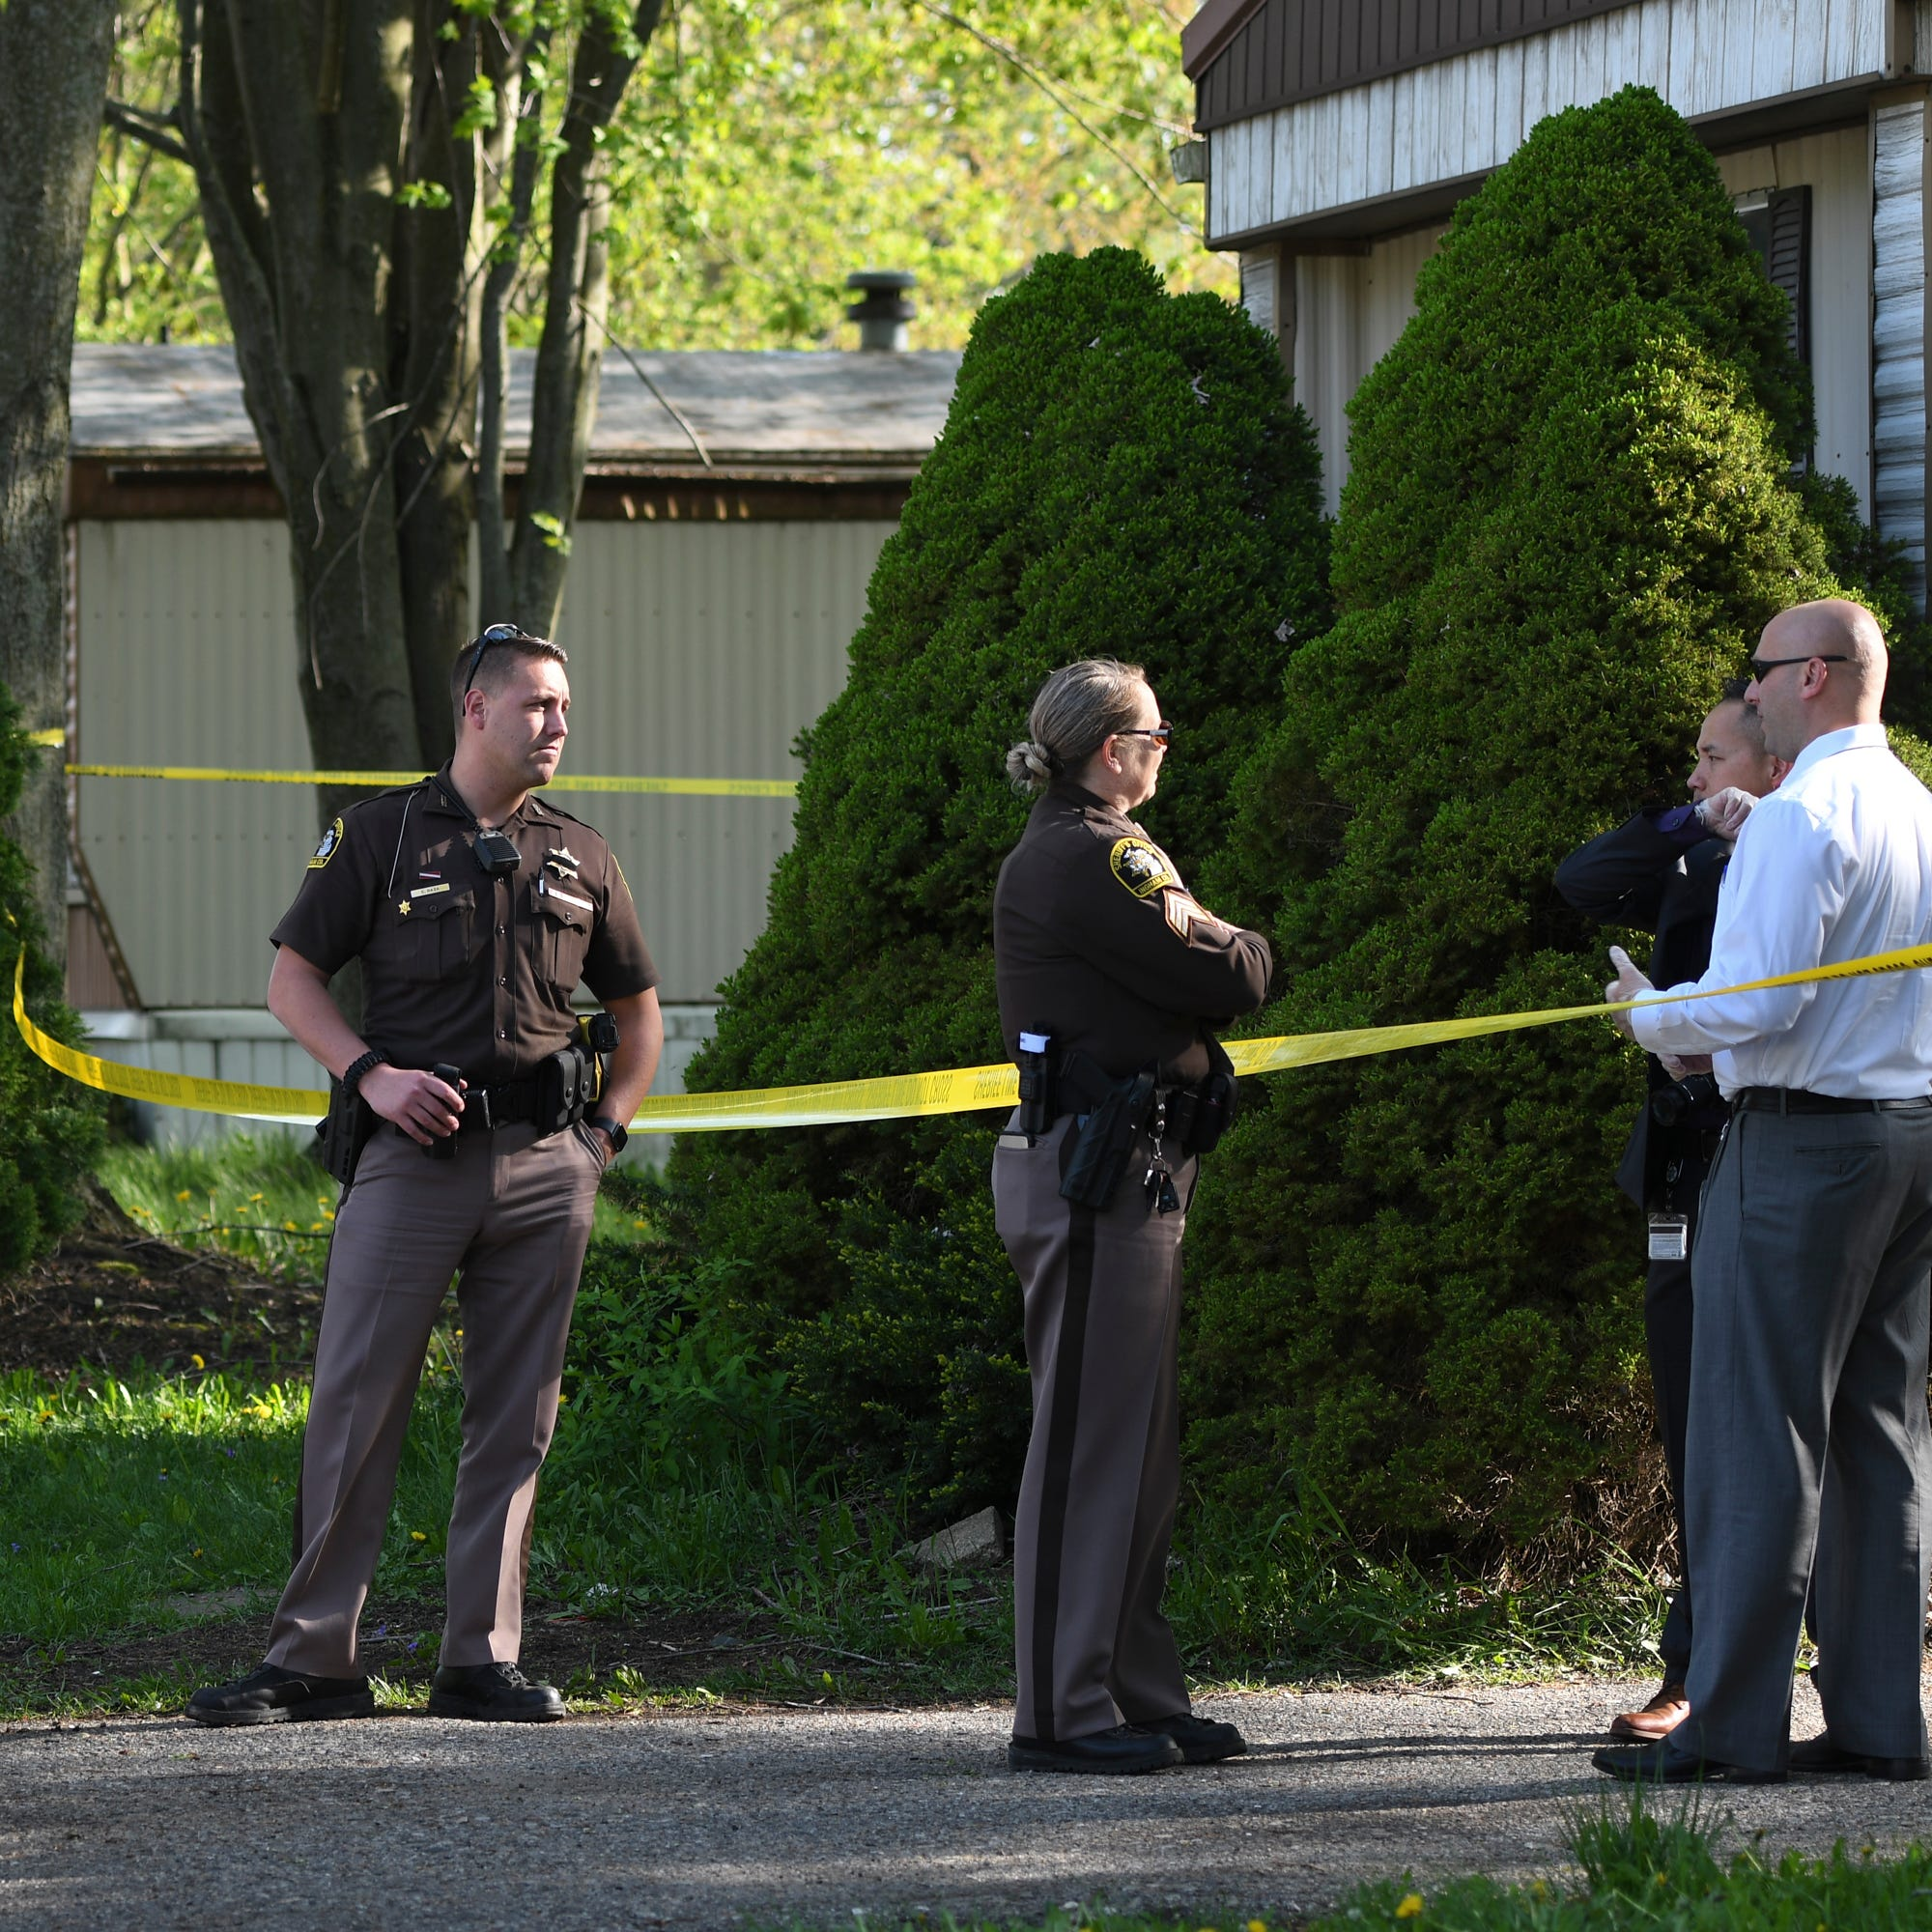 Police investigating suspicious death of woman in Delhi Twp.